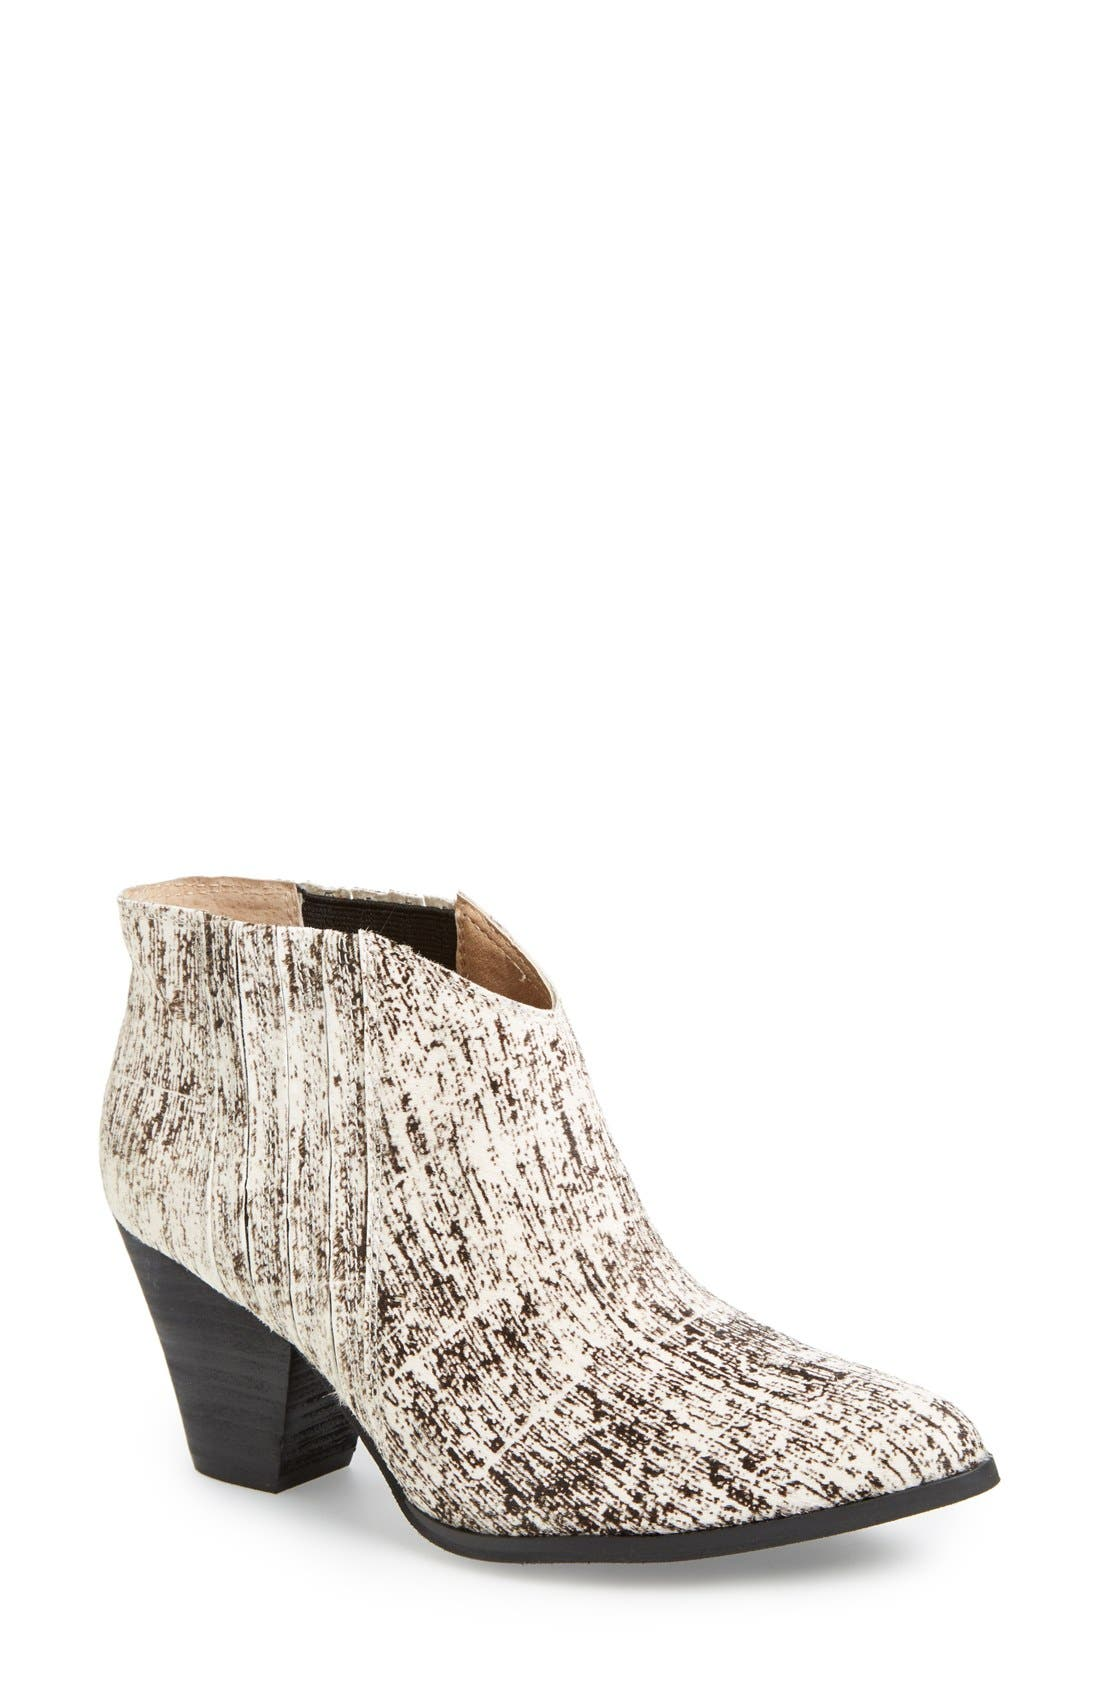 'Addie' Pointy Toe Ankle Bootie,                             Main thumbnail 2, color,